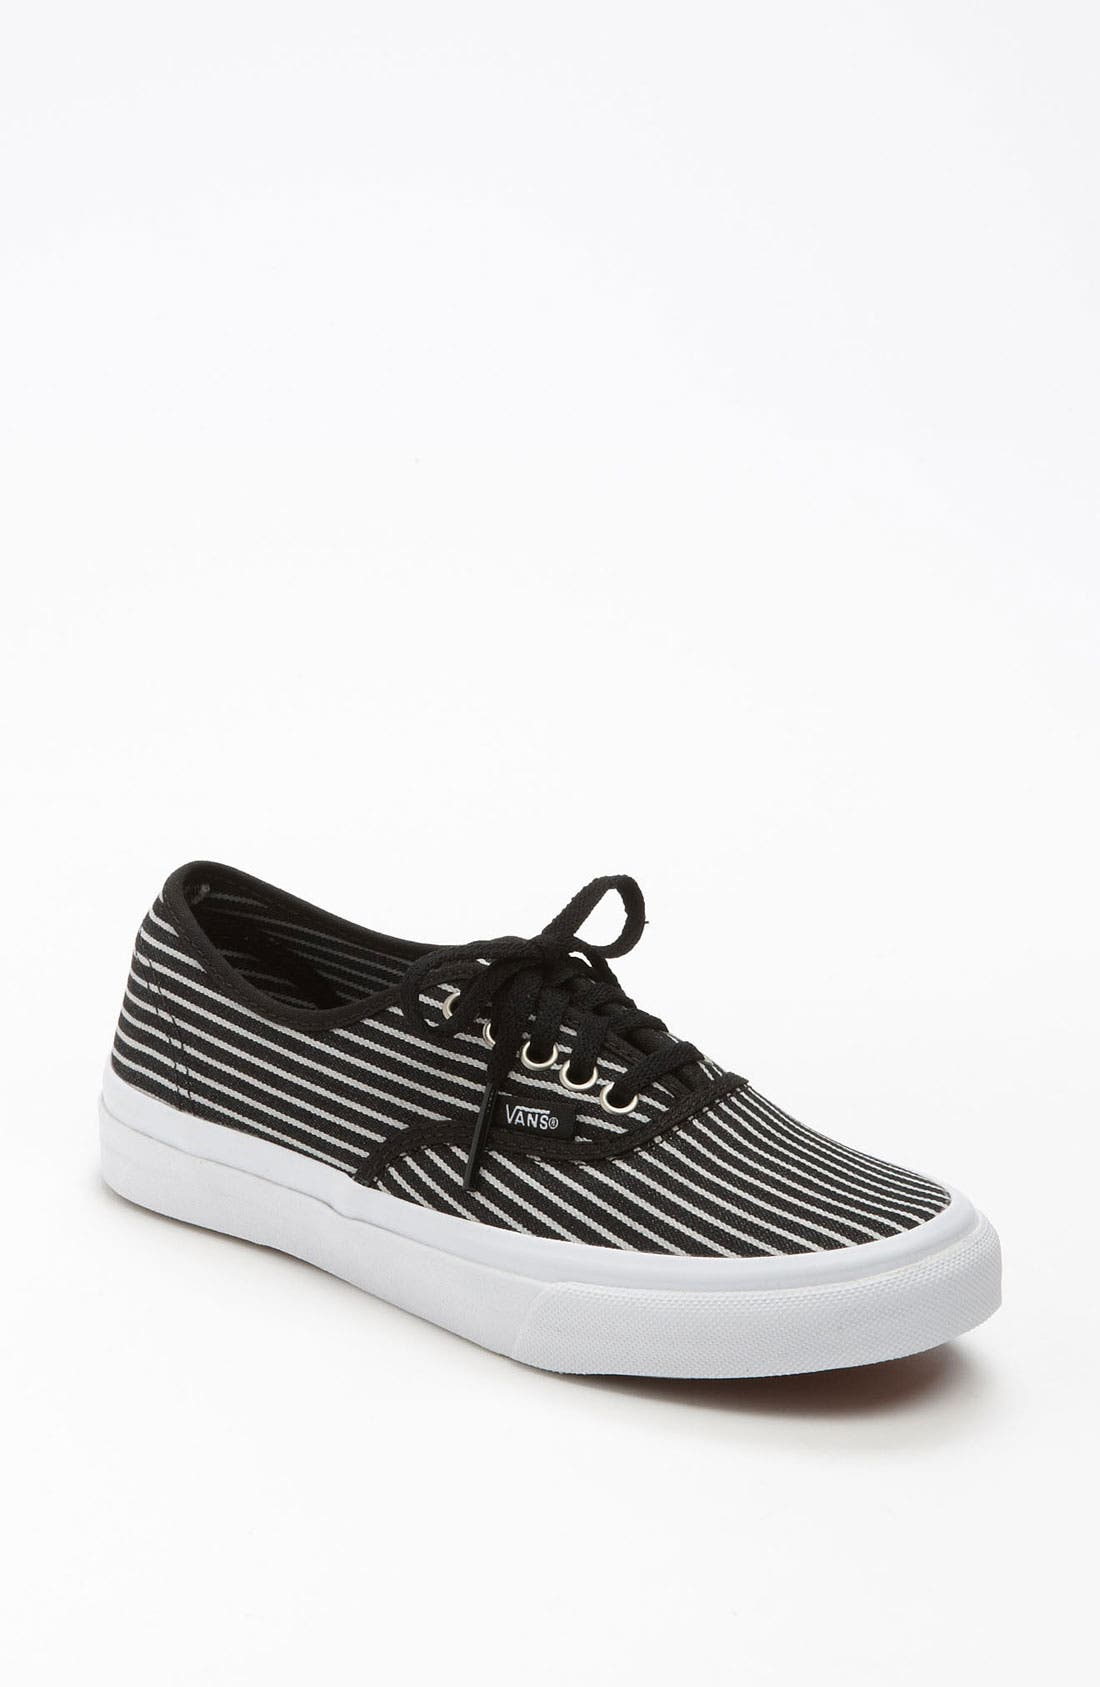 Main Image - Vans 'Authentic - Slim' Sneaker (Women)